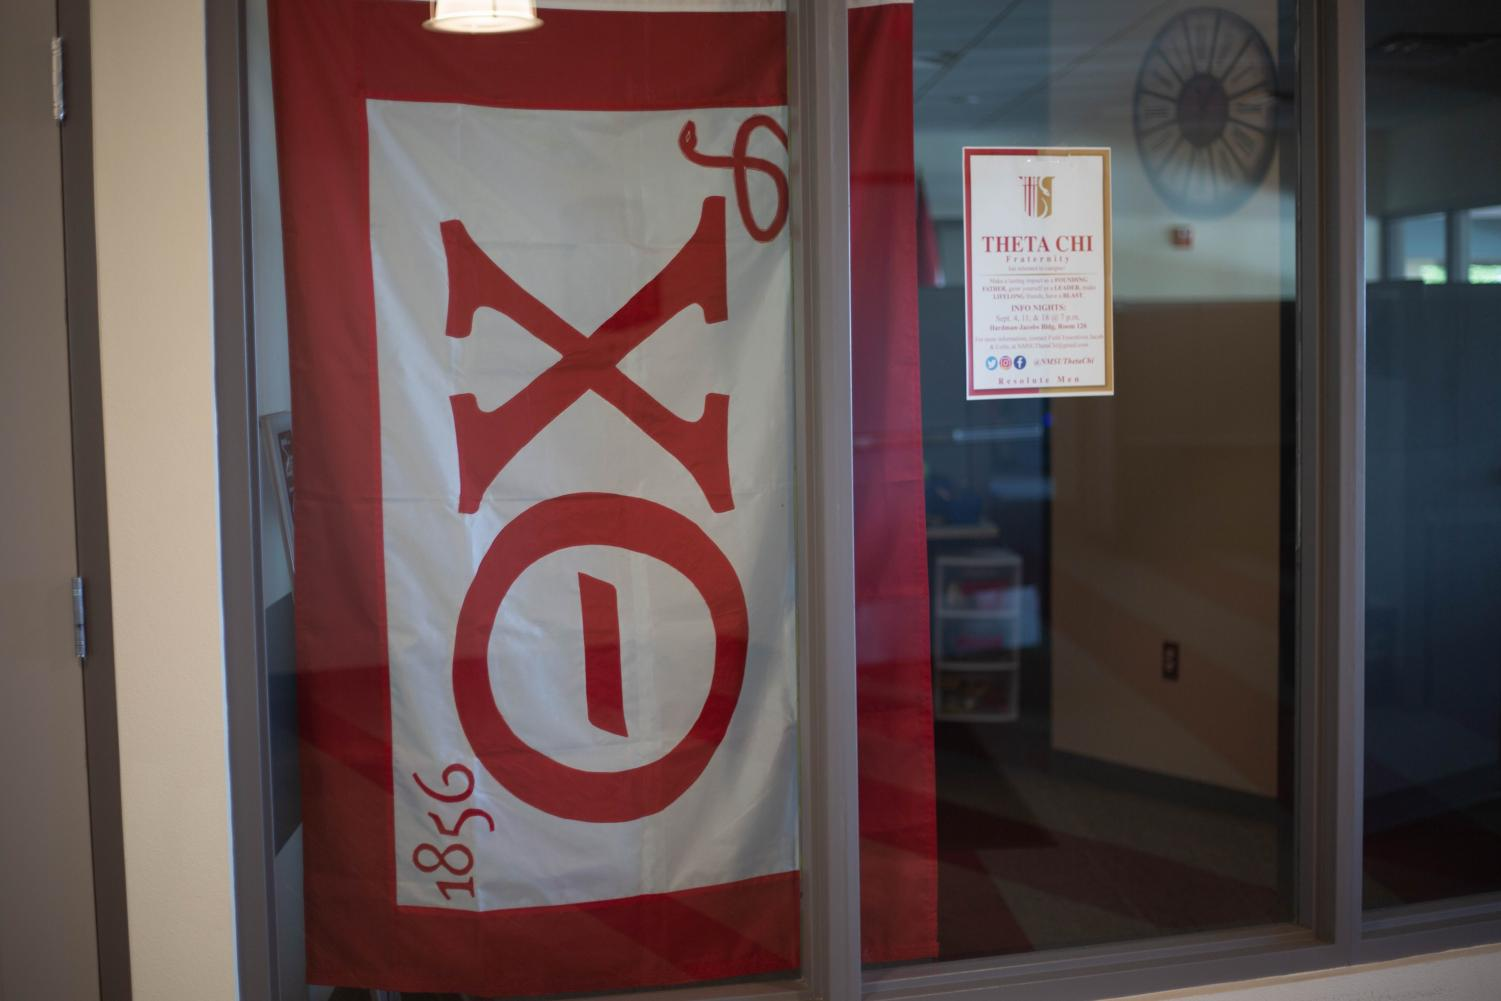 The Theta Chi was previously on the NMSU campus from 1948-1995.